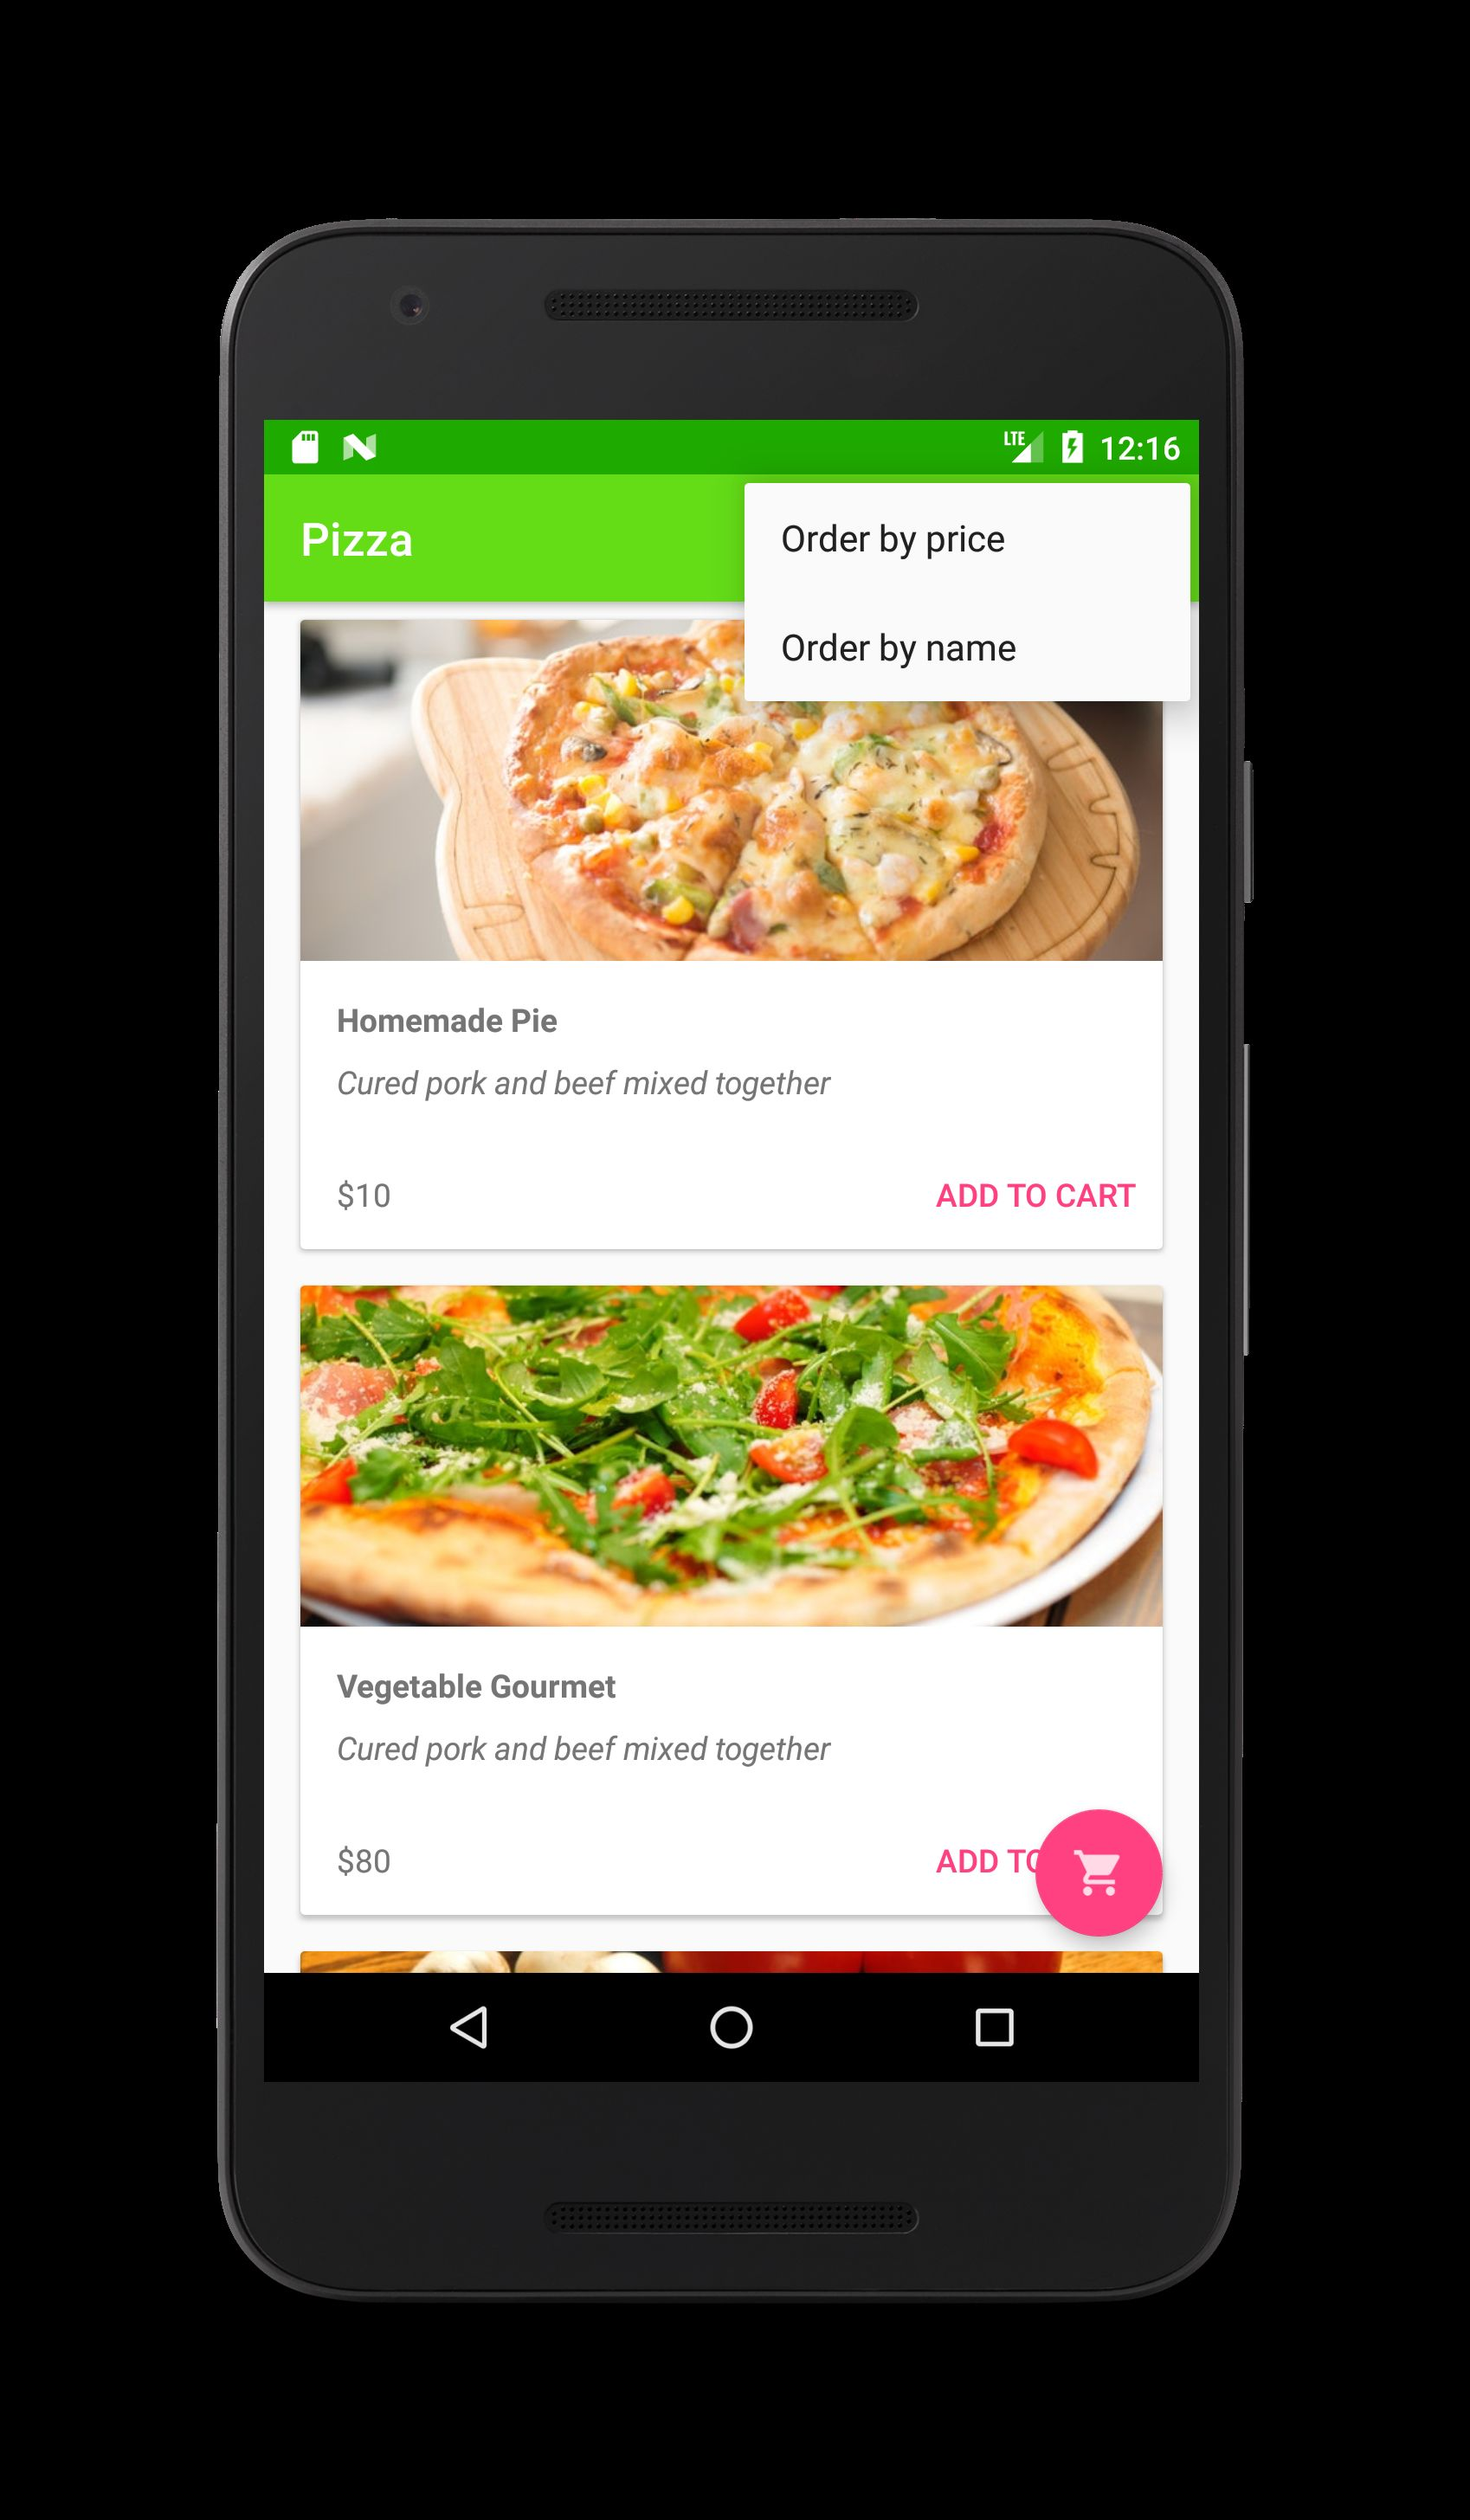 Food Delivery Restaurant App - Android Source Code Screenshot 3